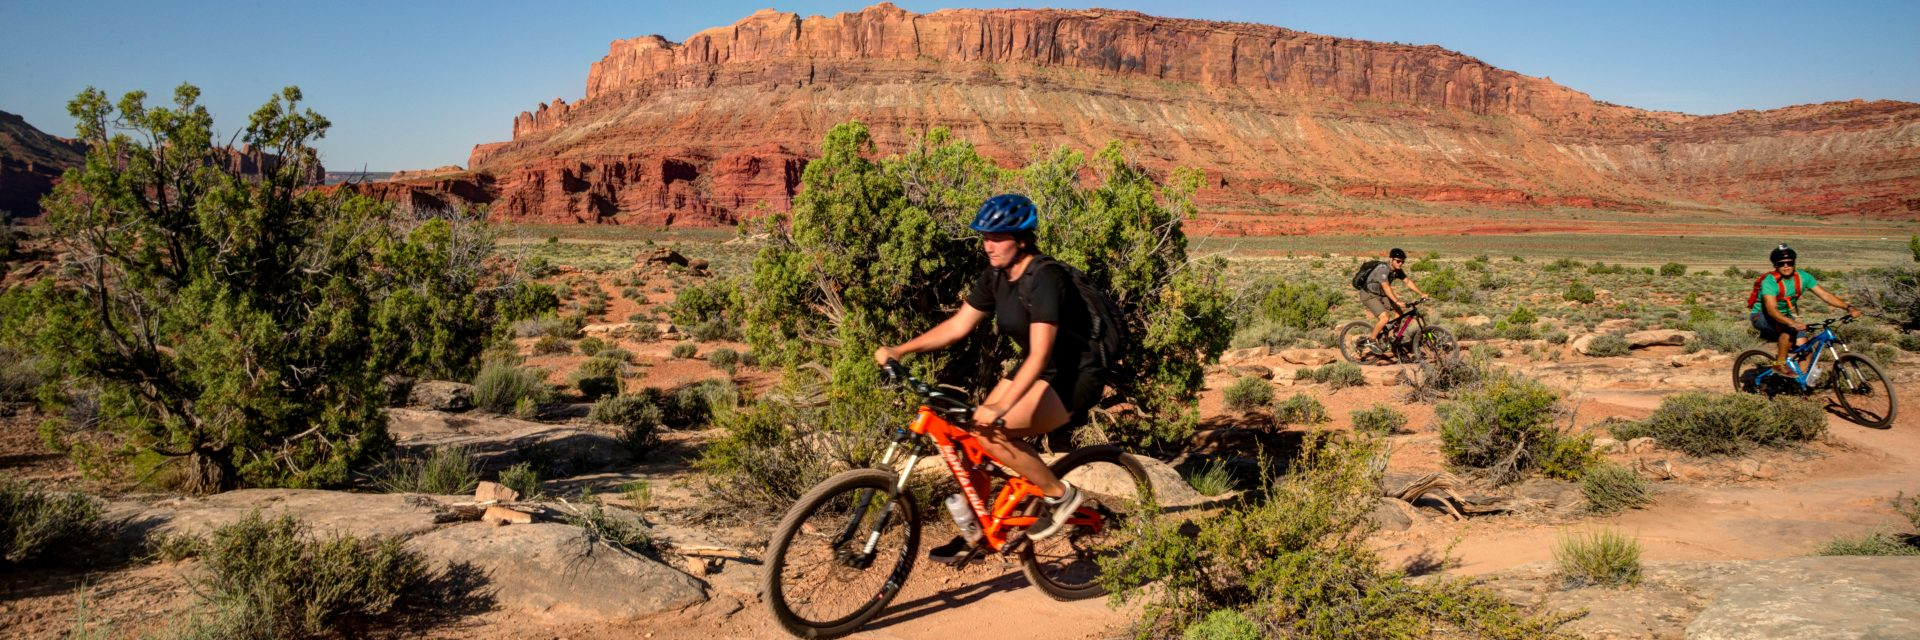 Mountain bikers follow their guide on the beginning of Courthouse Loop Trail